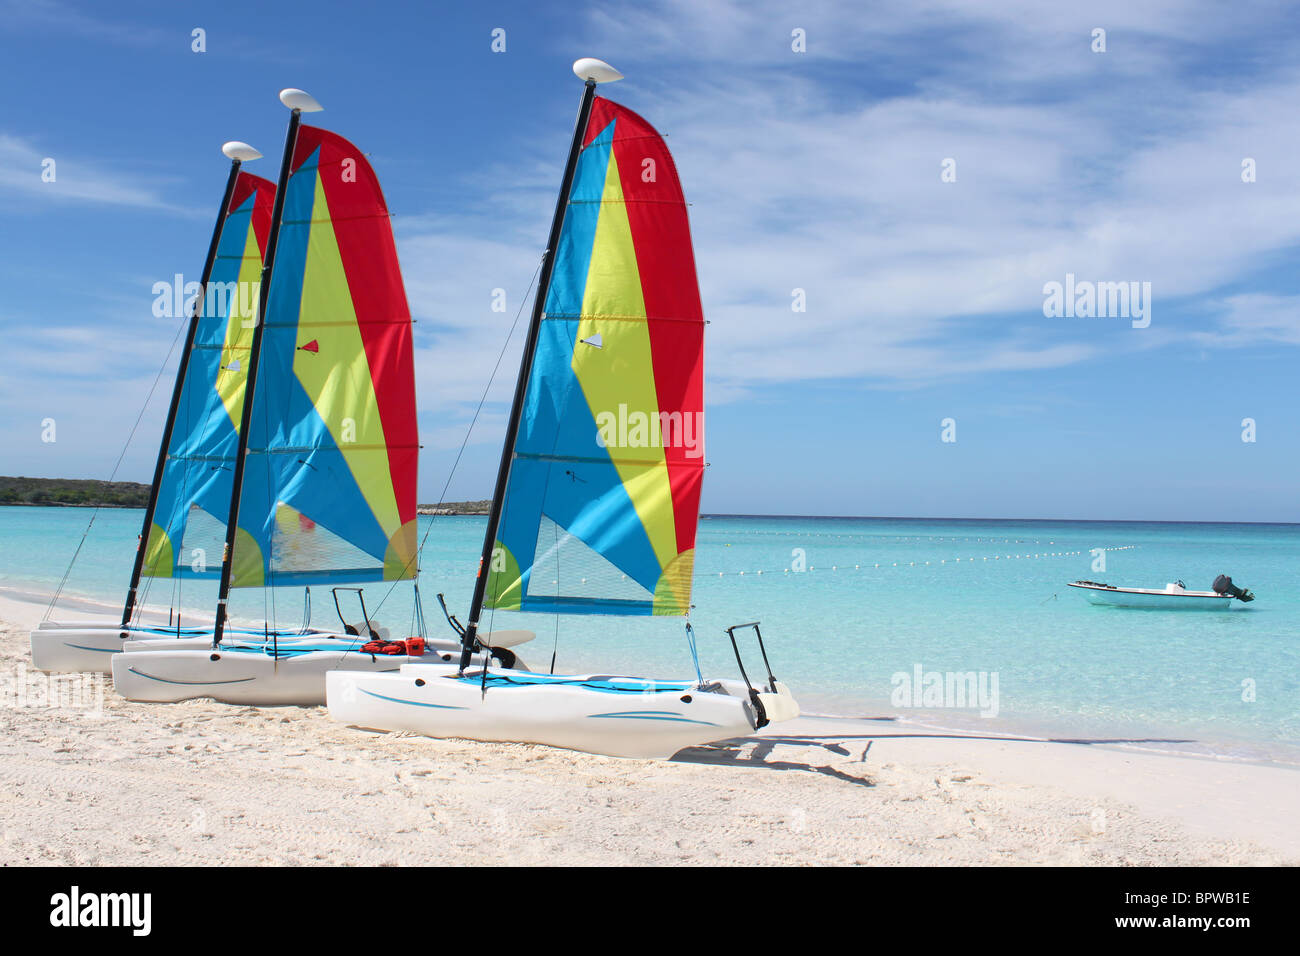 Colorful sailboats for rent on a tropical beach at Half Moon Cay in the Bahamas - Stock Image